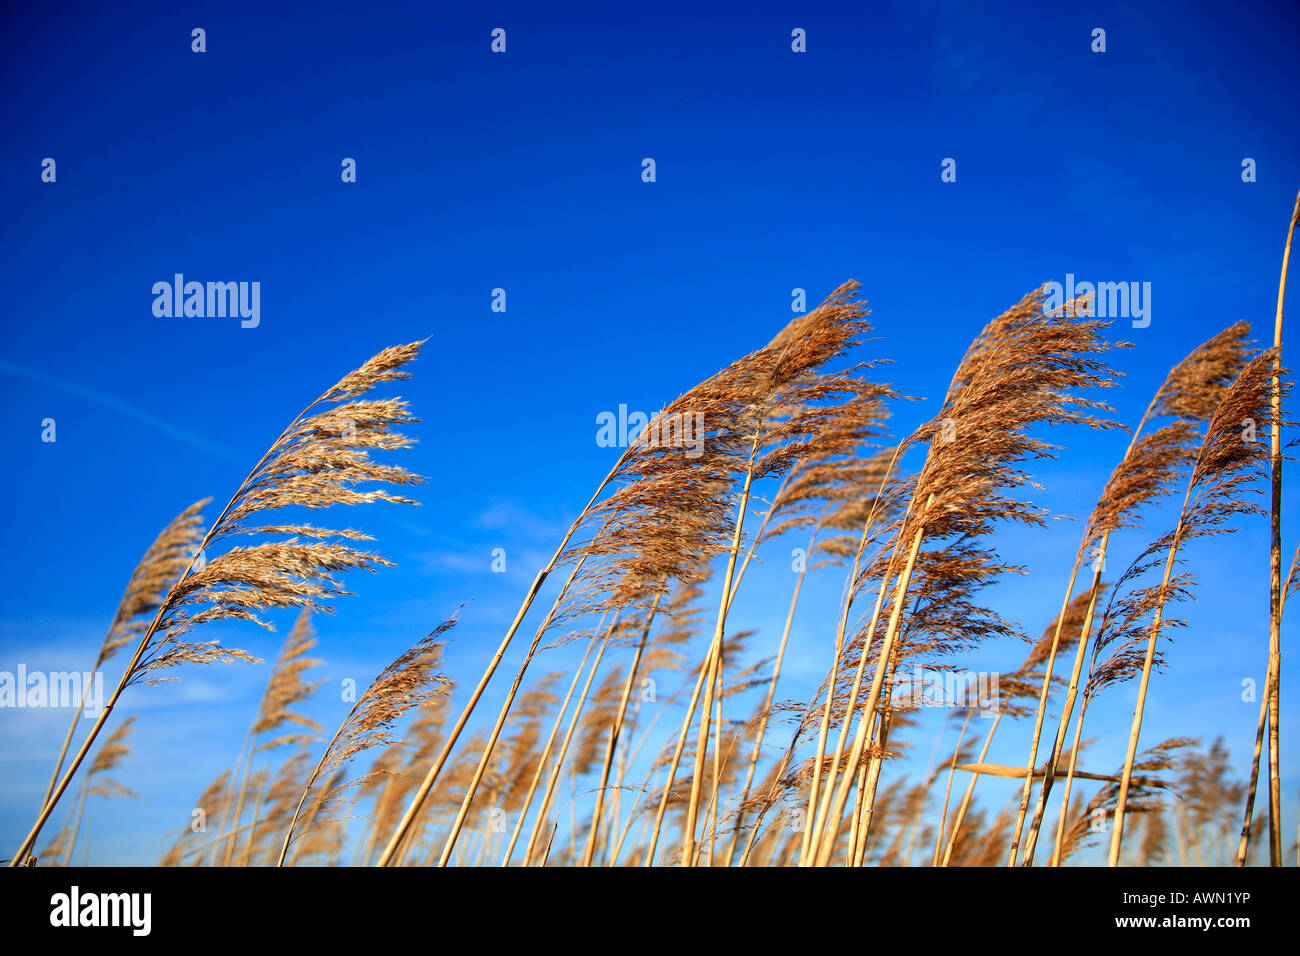 Fenland Reedbeds Whittlesey Washes National Nature and Bird Reserve Cambridgeshire England Britain UK Europe East Stock Photo